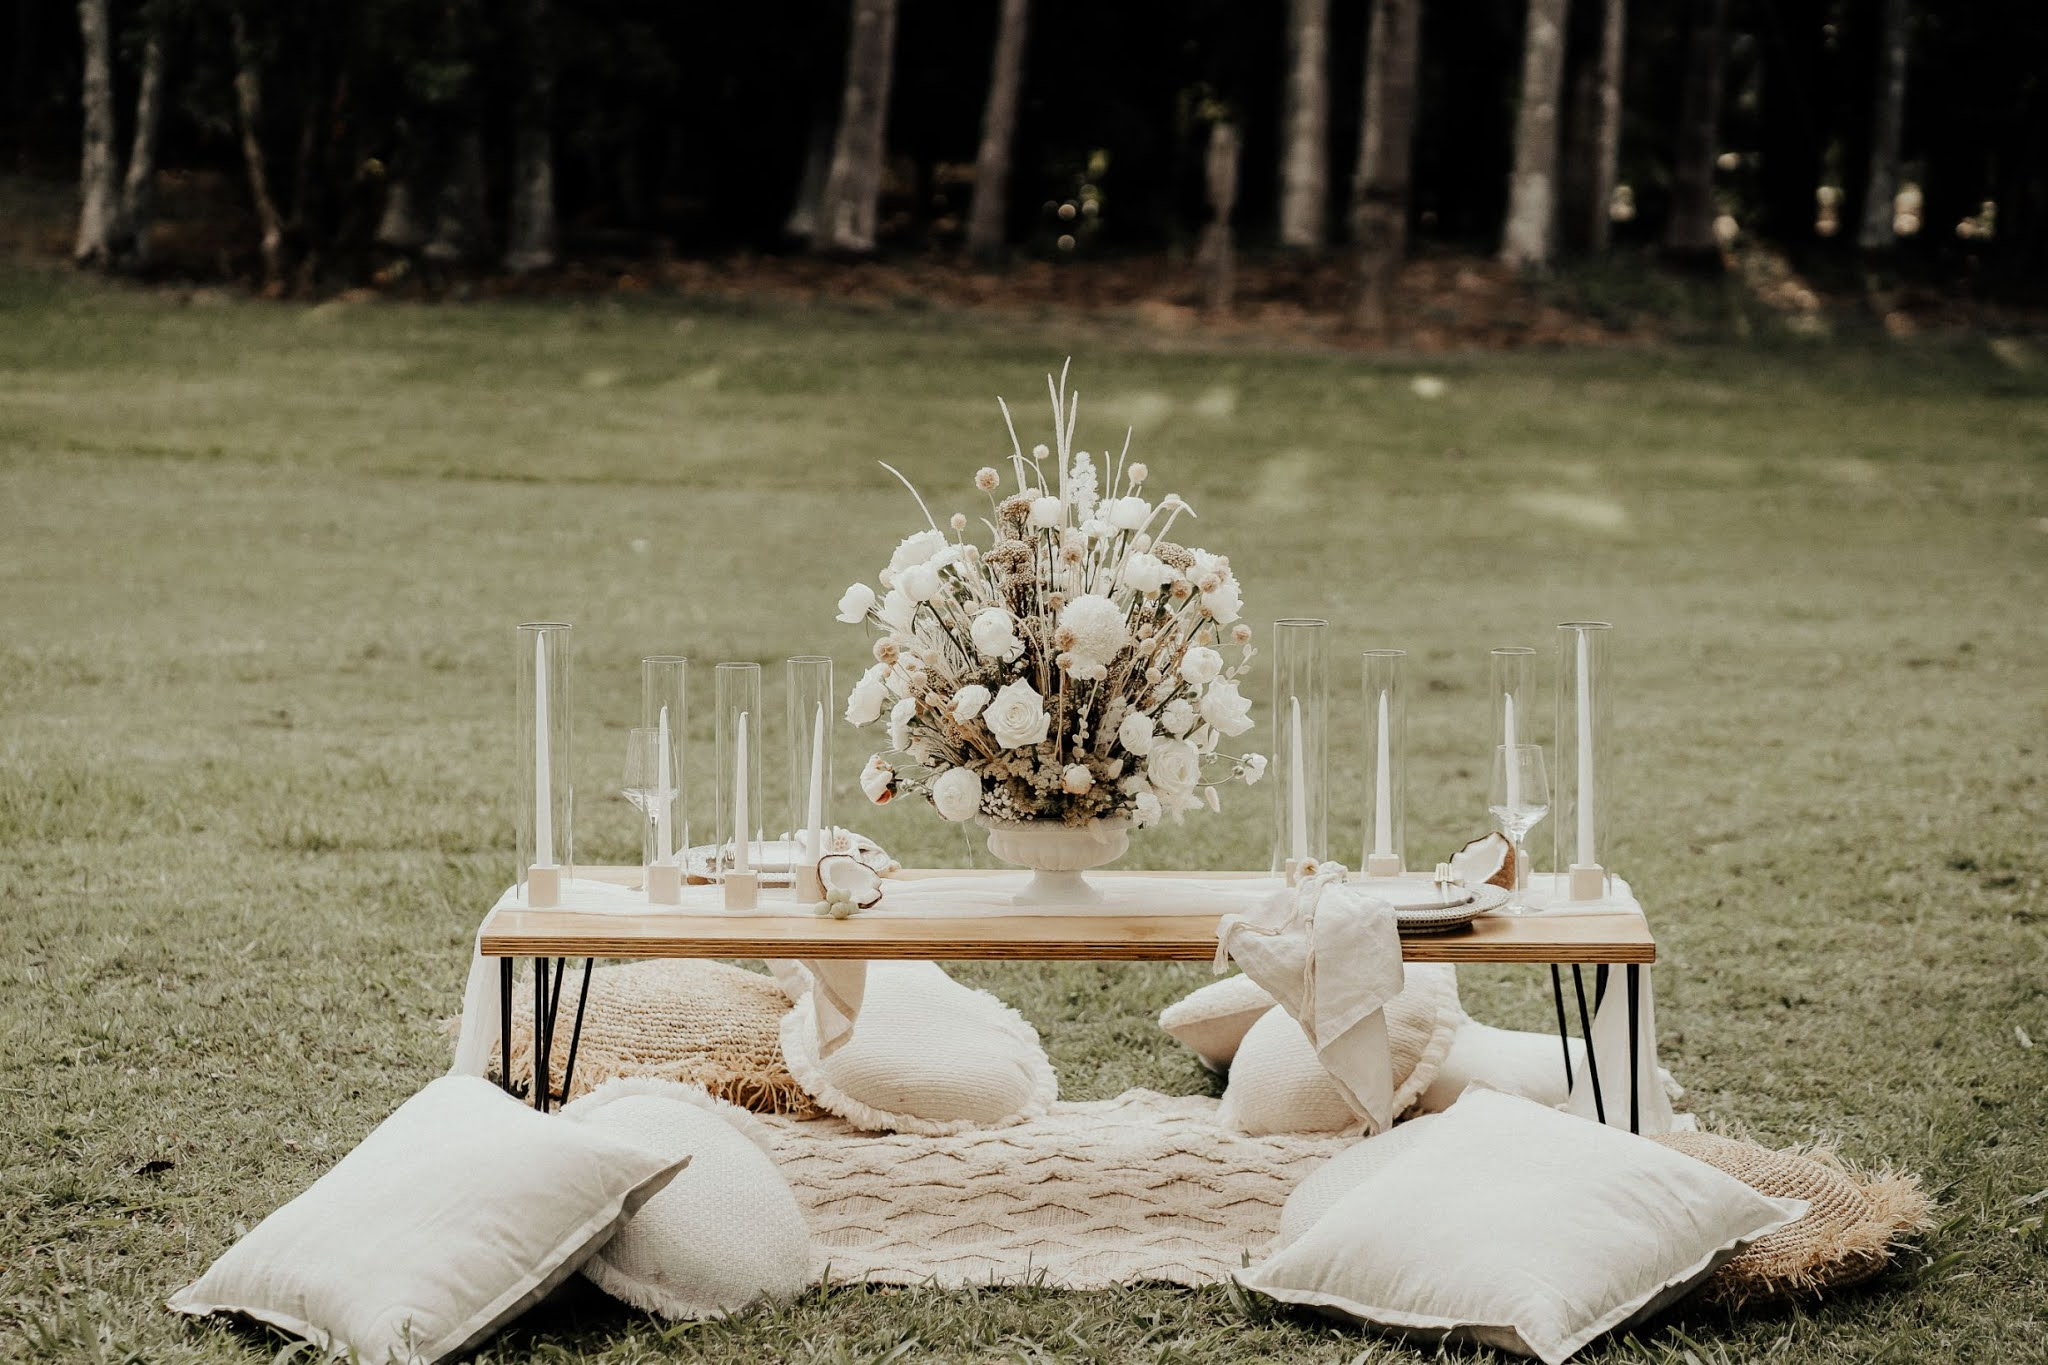 doe and deer photography gold coast bohemian styled weddings venue stationery florals